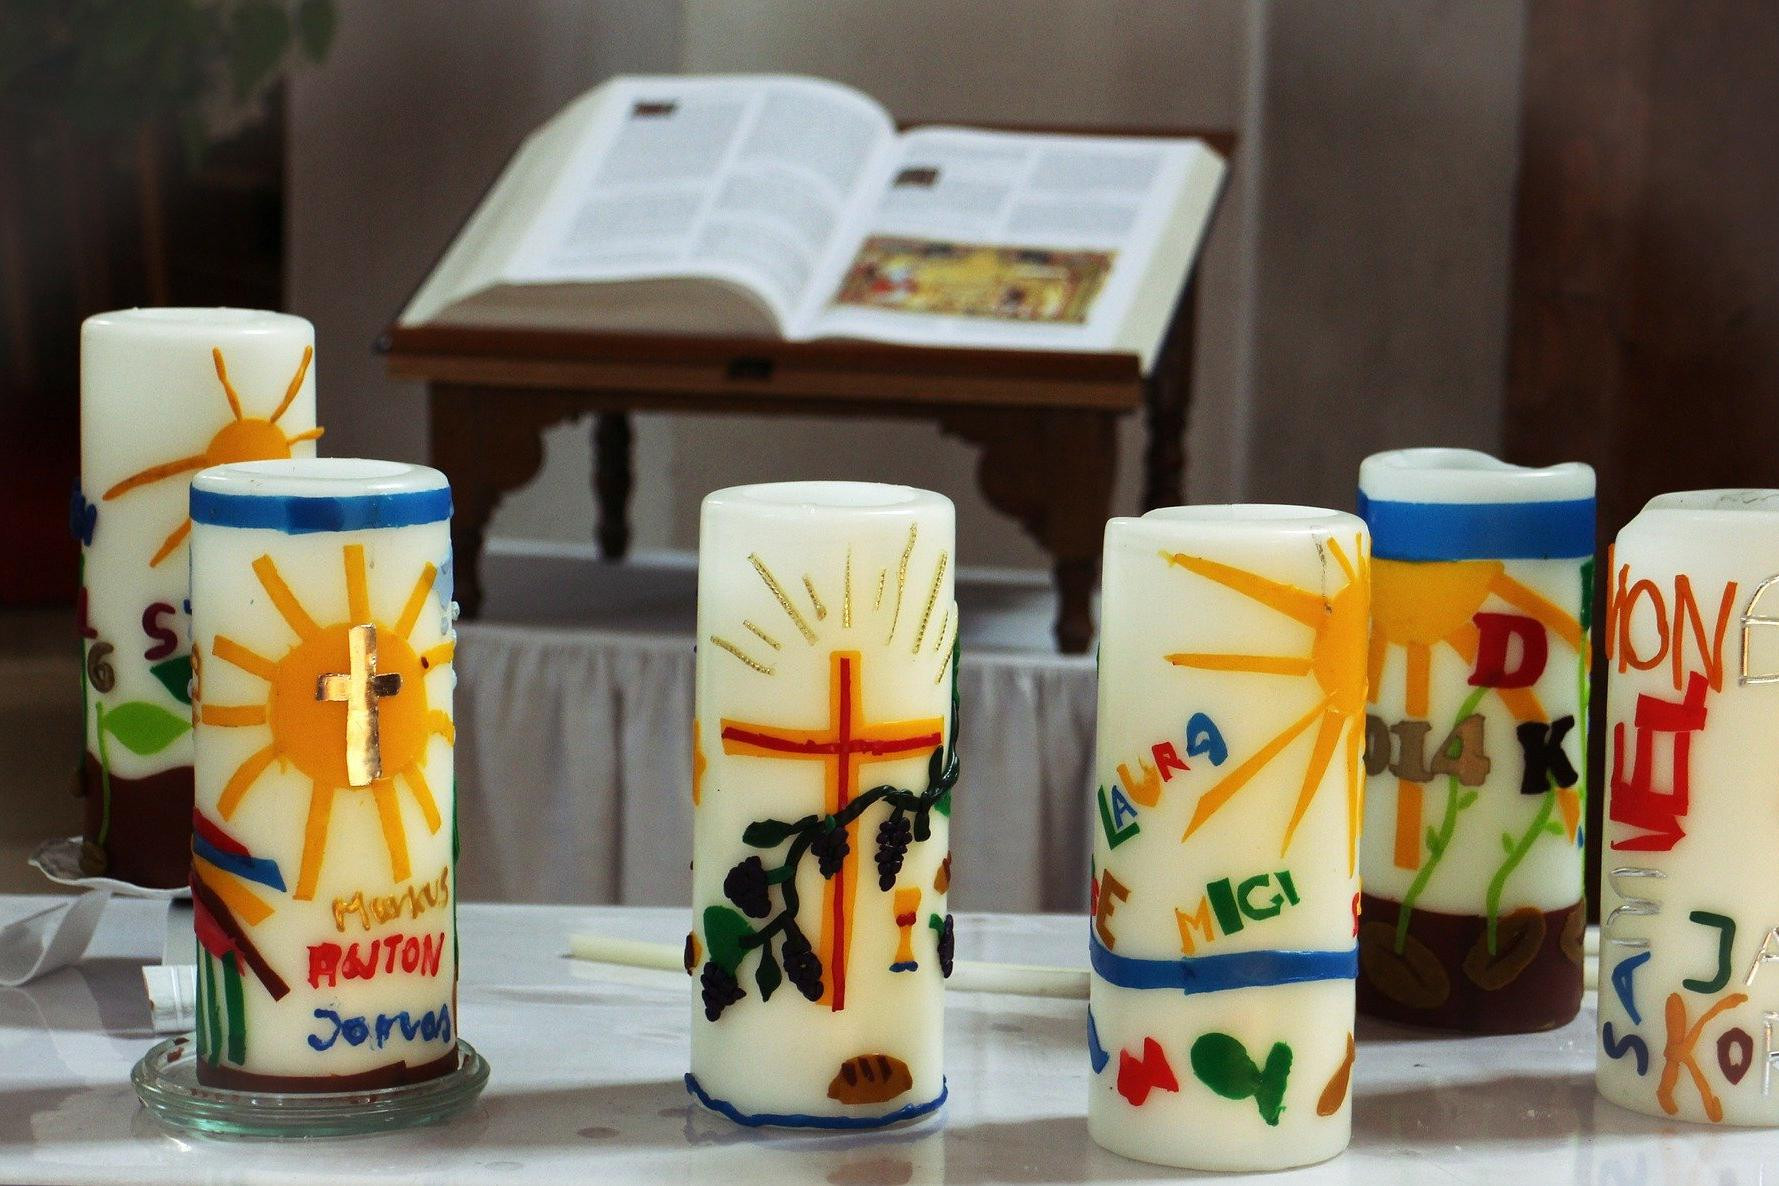 communion-candles-337159_1920 (c) pixabay.com